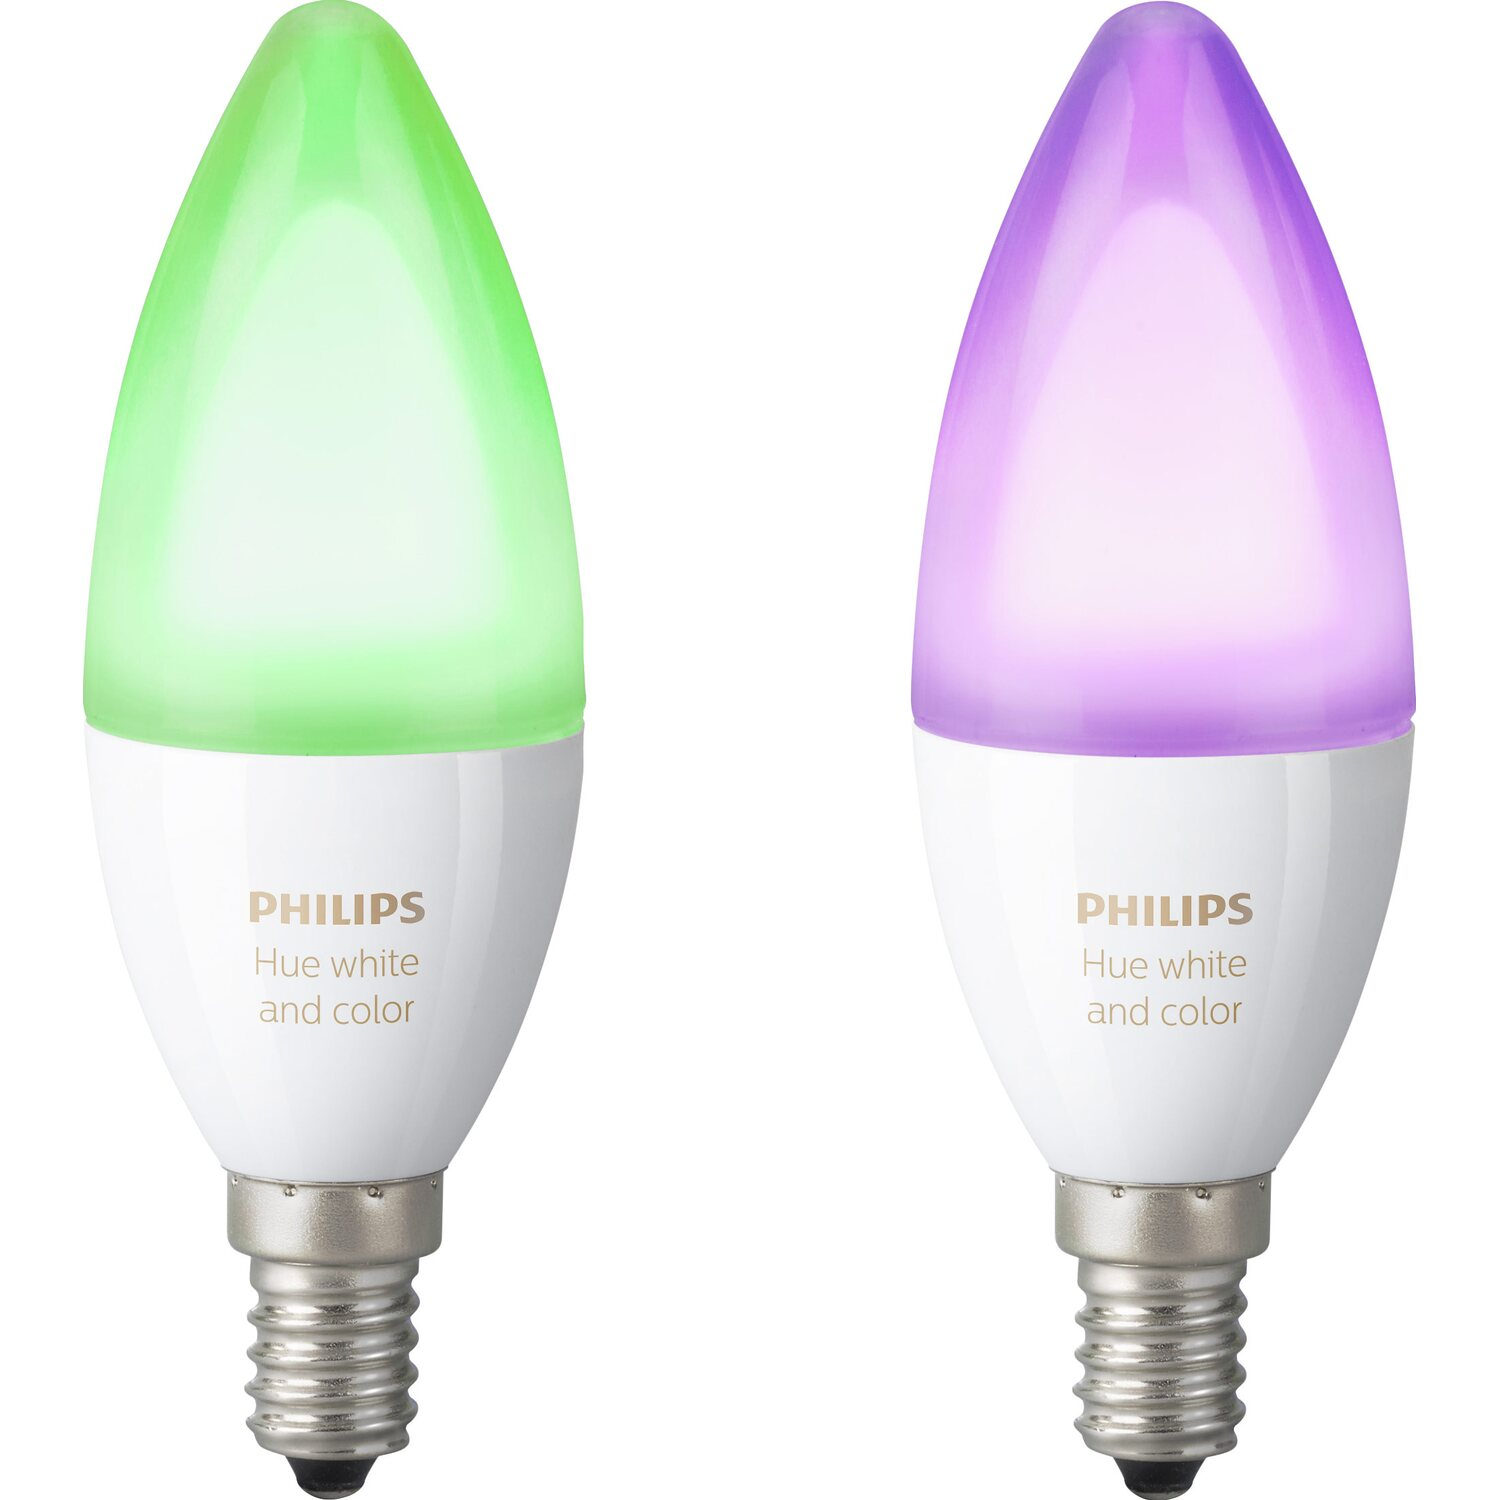 philips led farbwechsel lampen